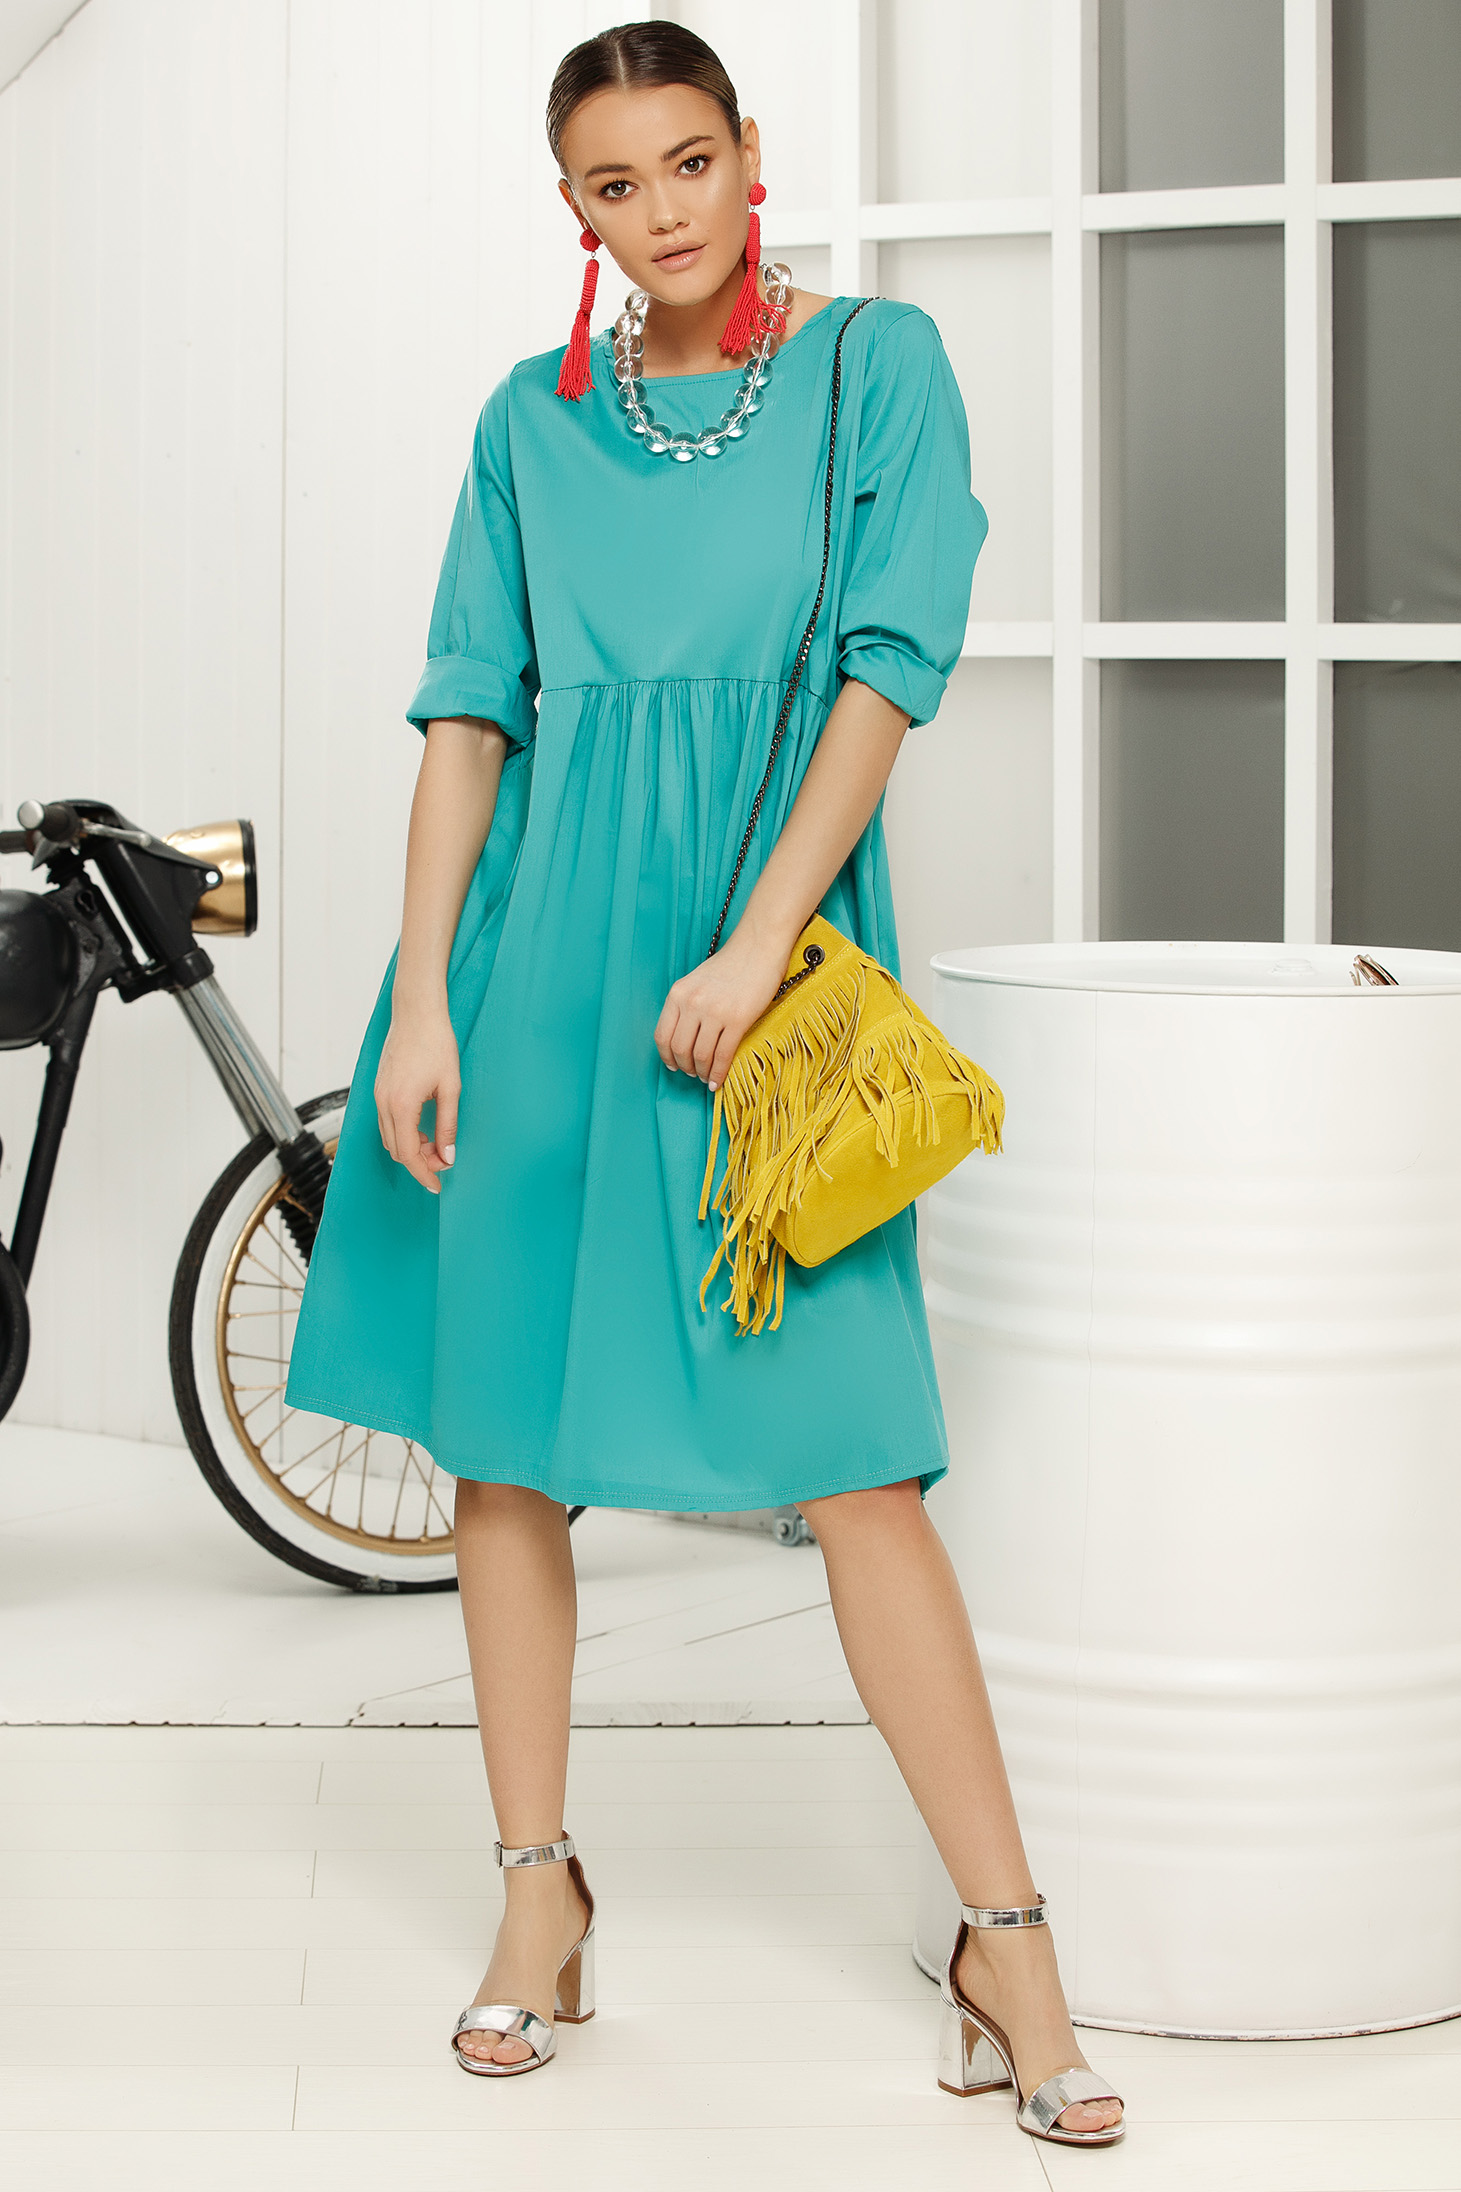 Turquoise casual daily flared dress with 3/4 sleeves